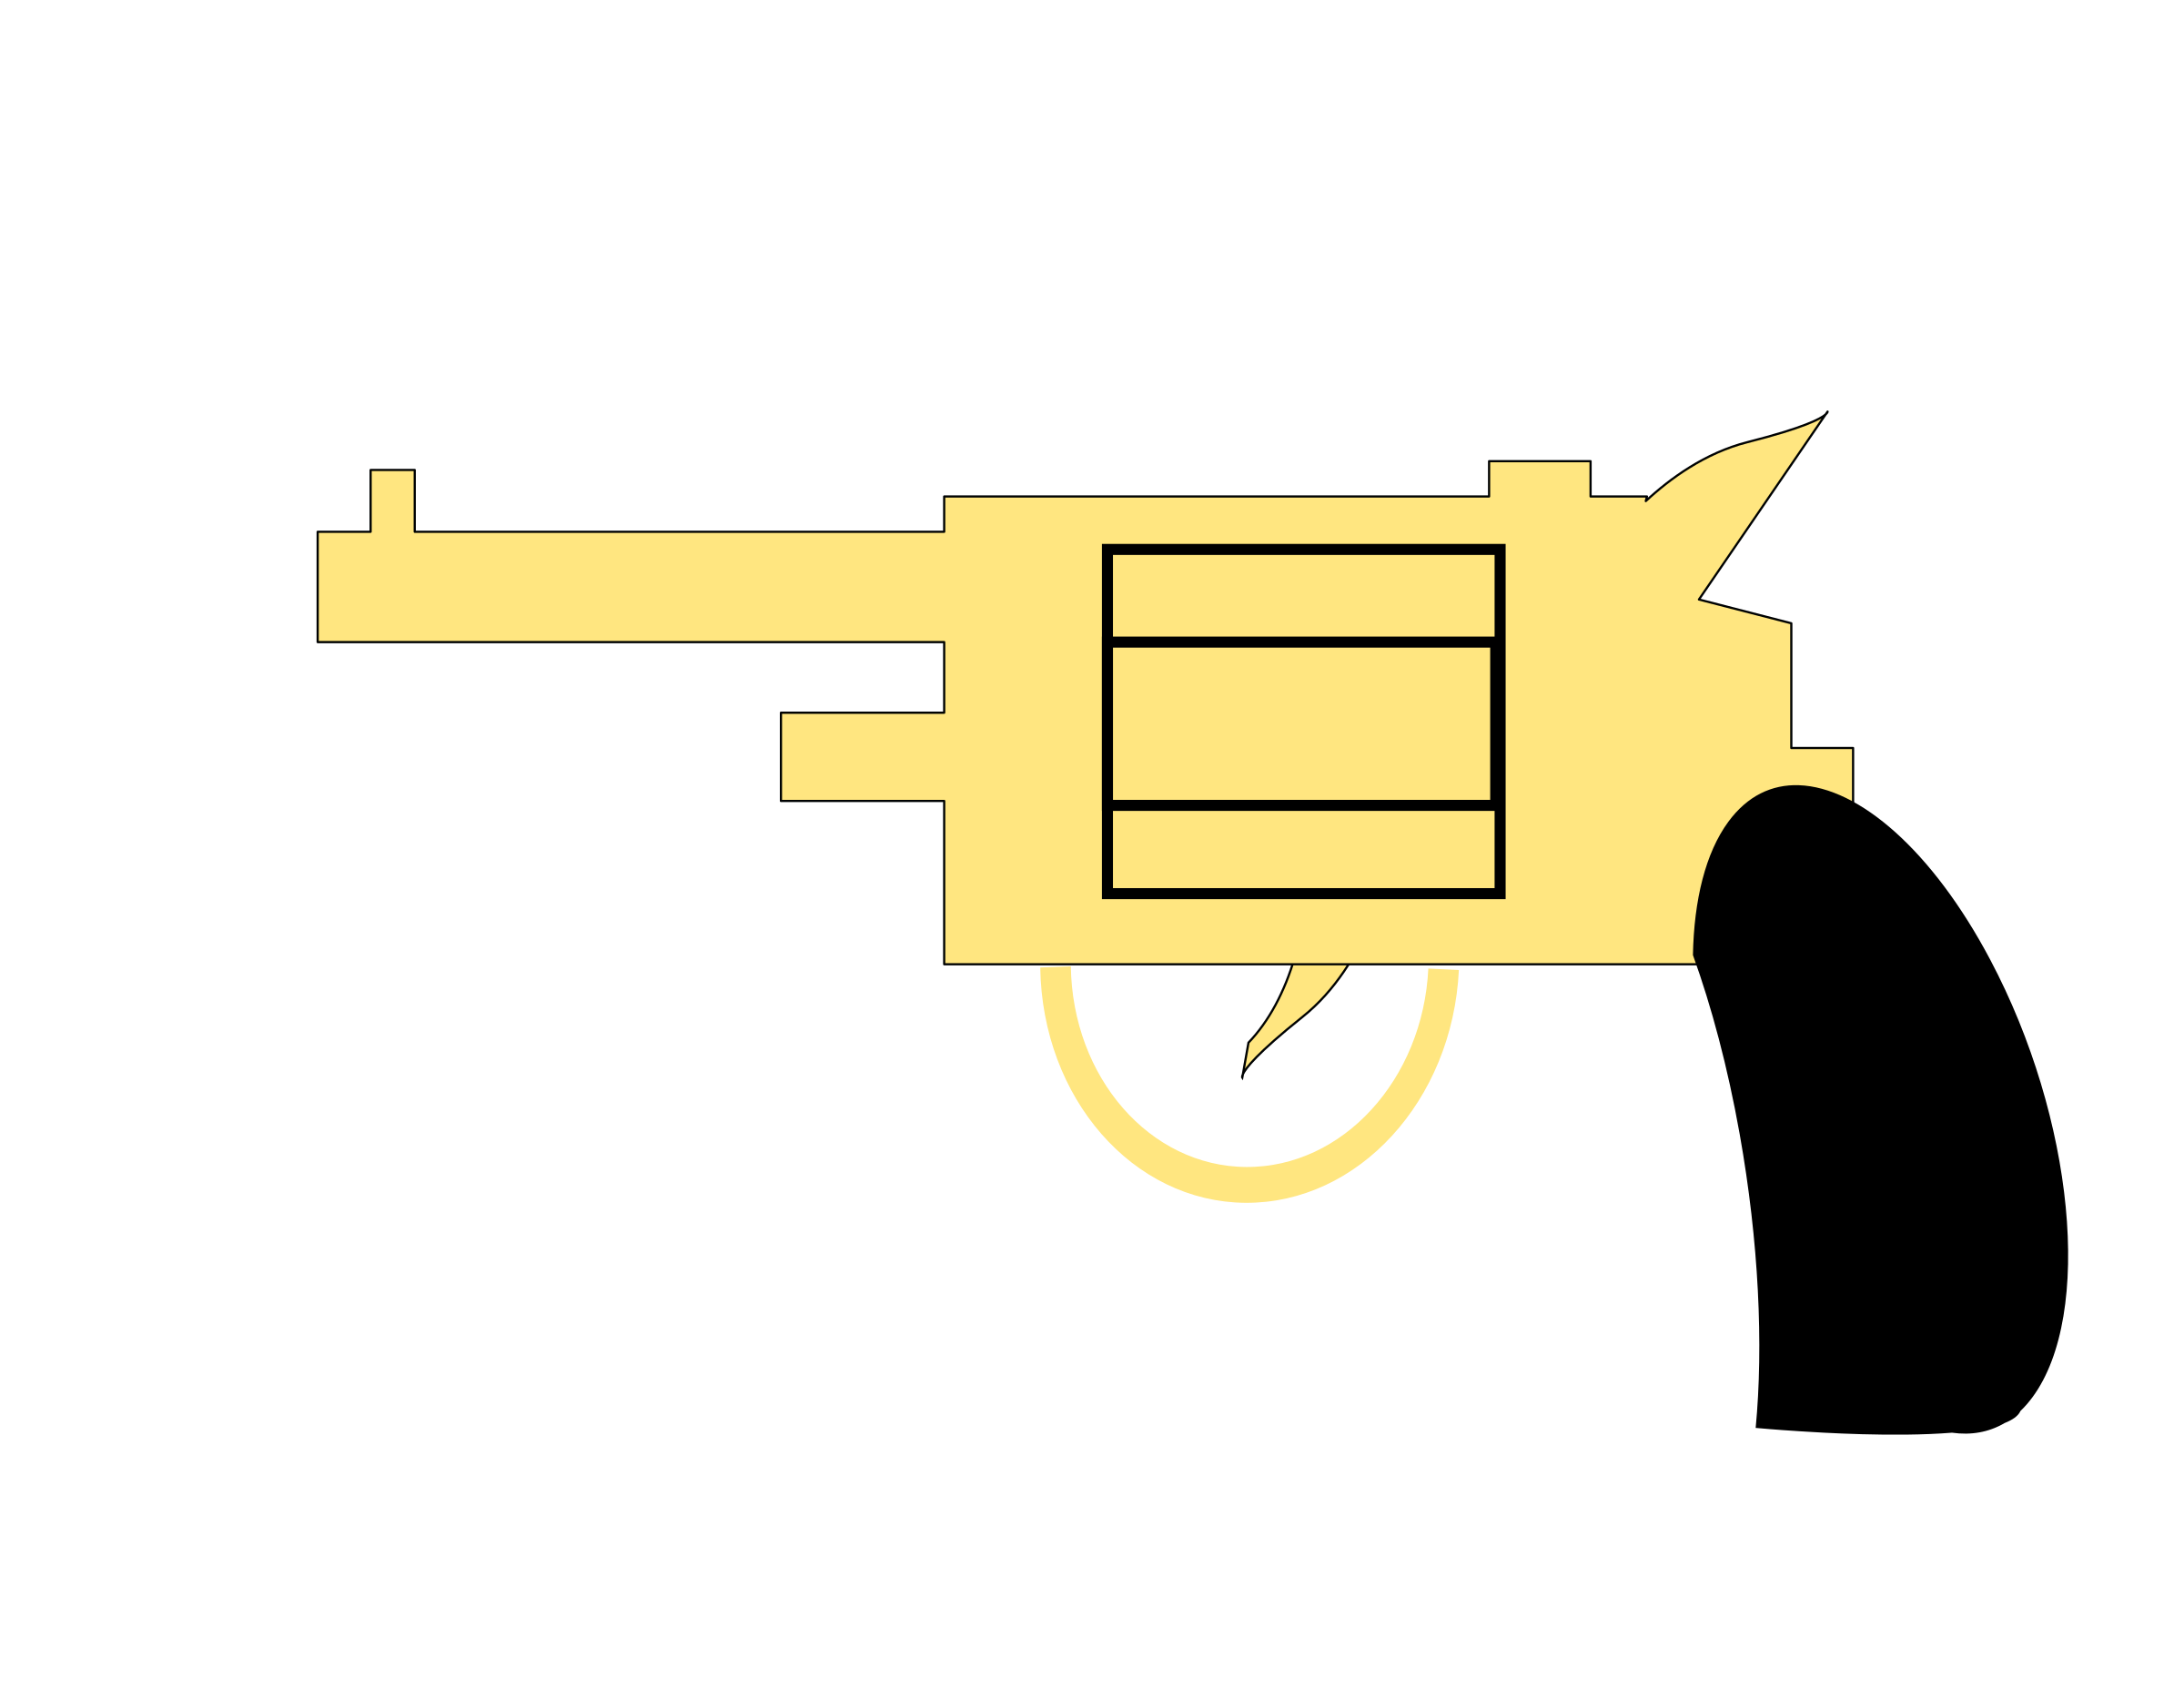 Clipart gun svg. Pistol icons png free